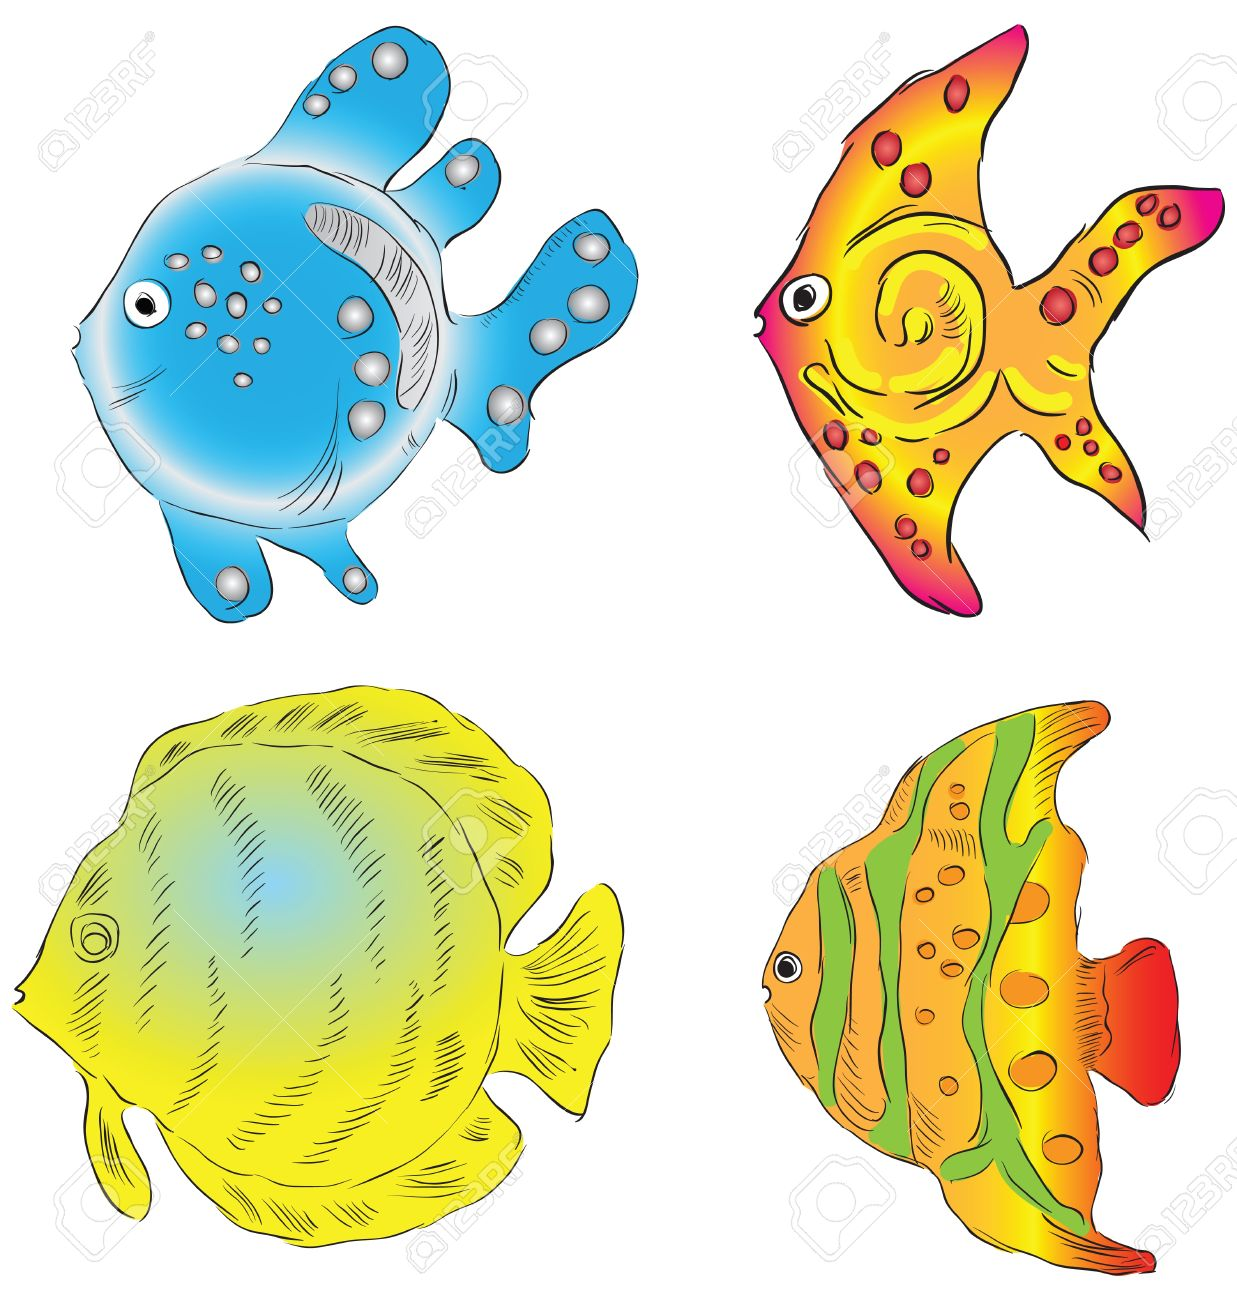 Ornamental Fish From The Southern Seas. Illustration. Royalty Free.